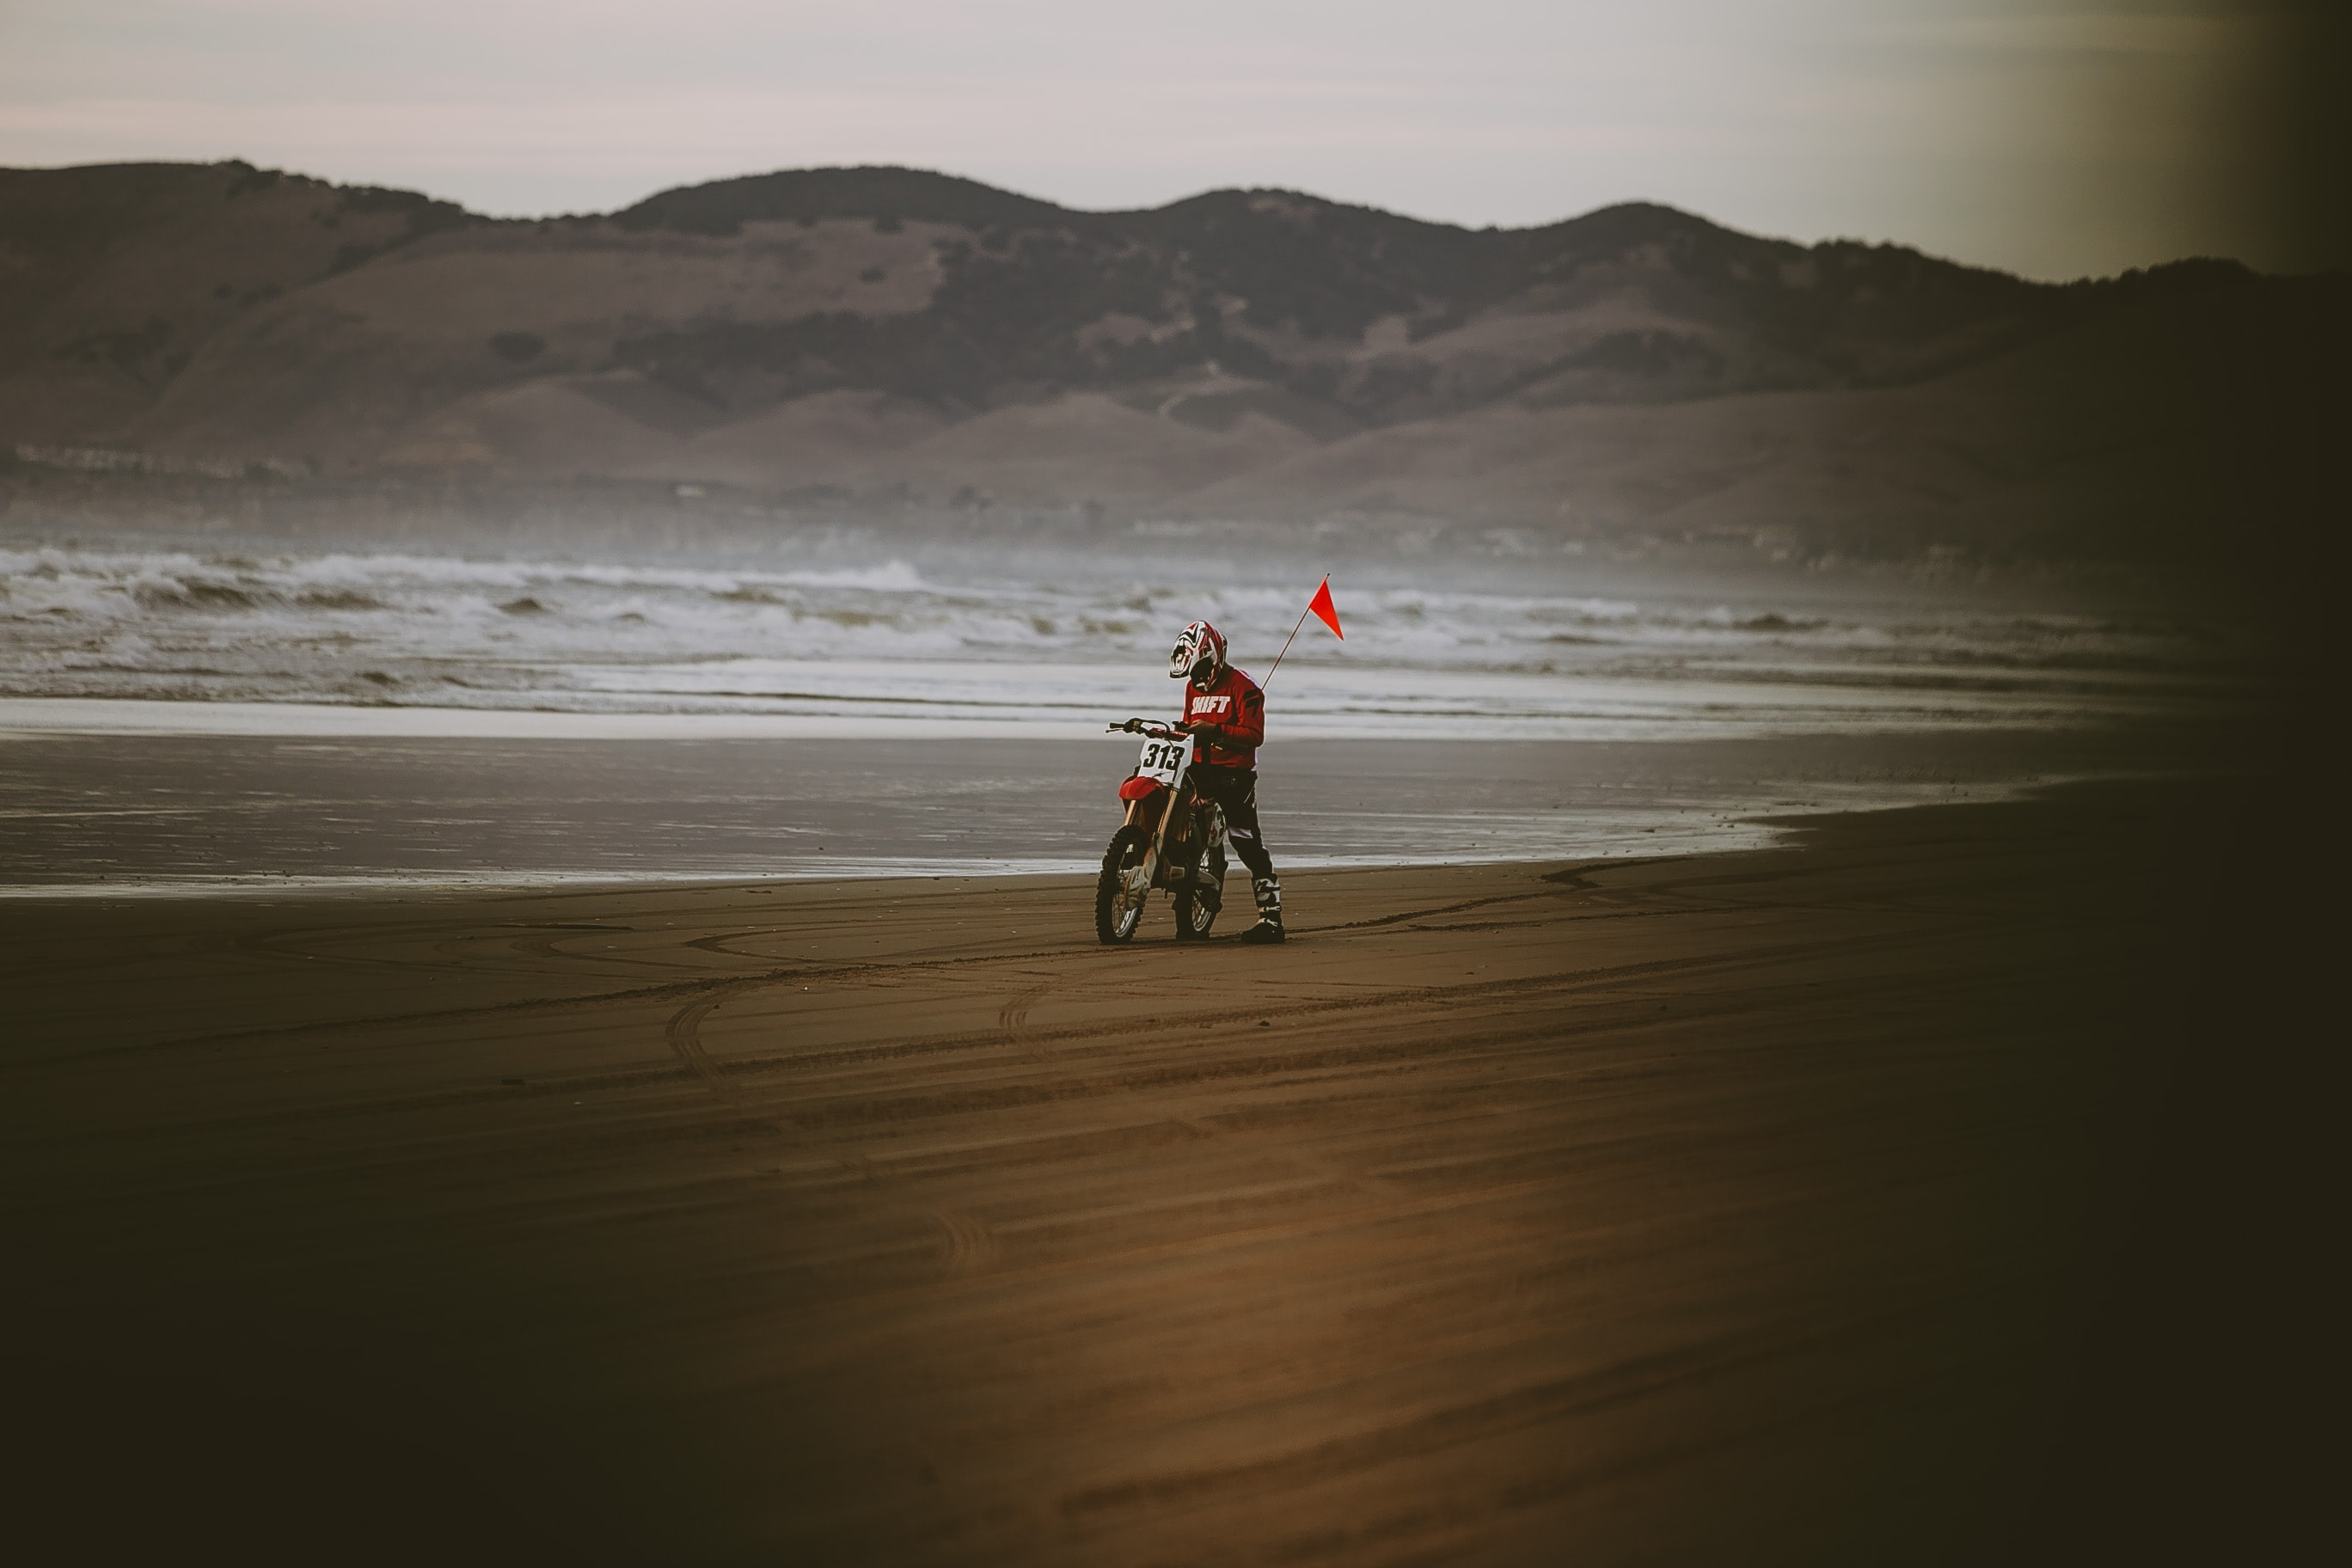 man riding motocross dirt bike near seashore